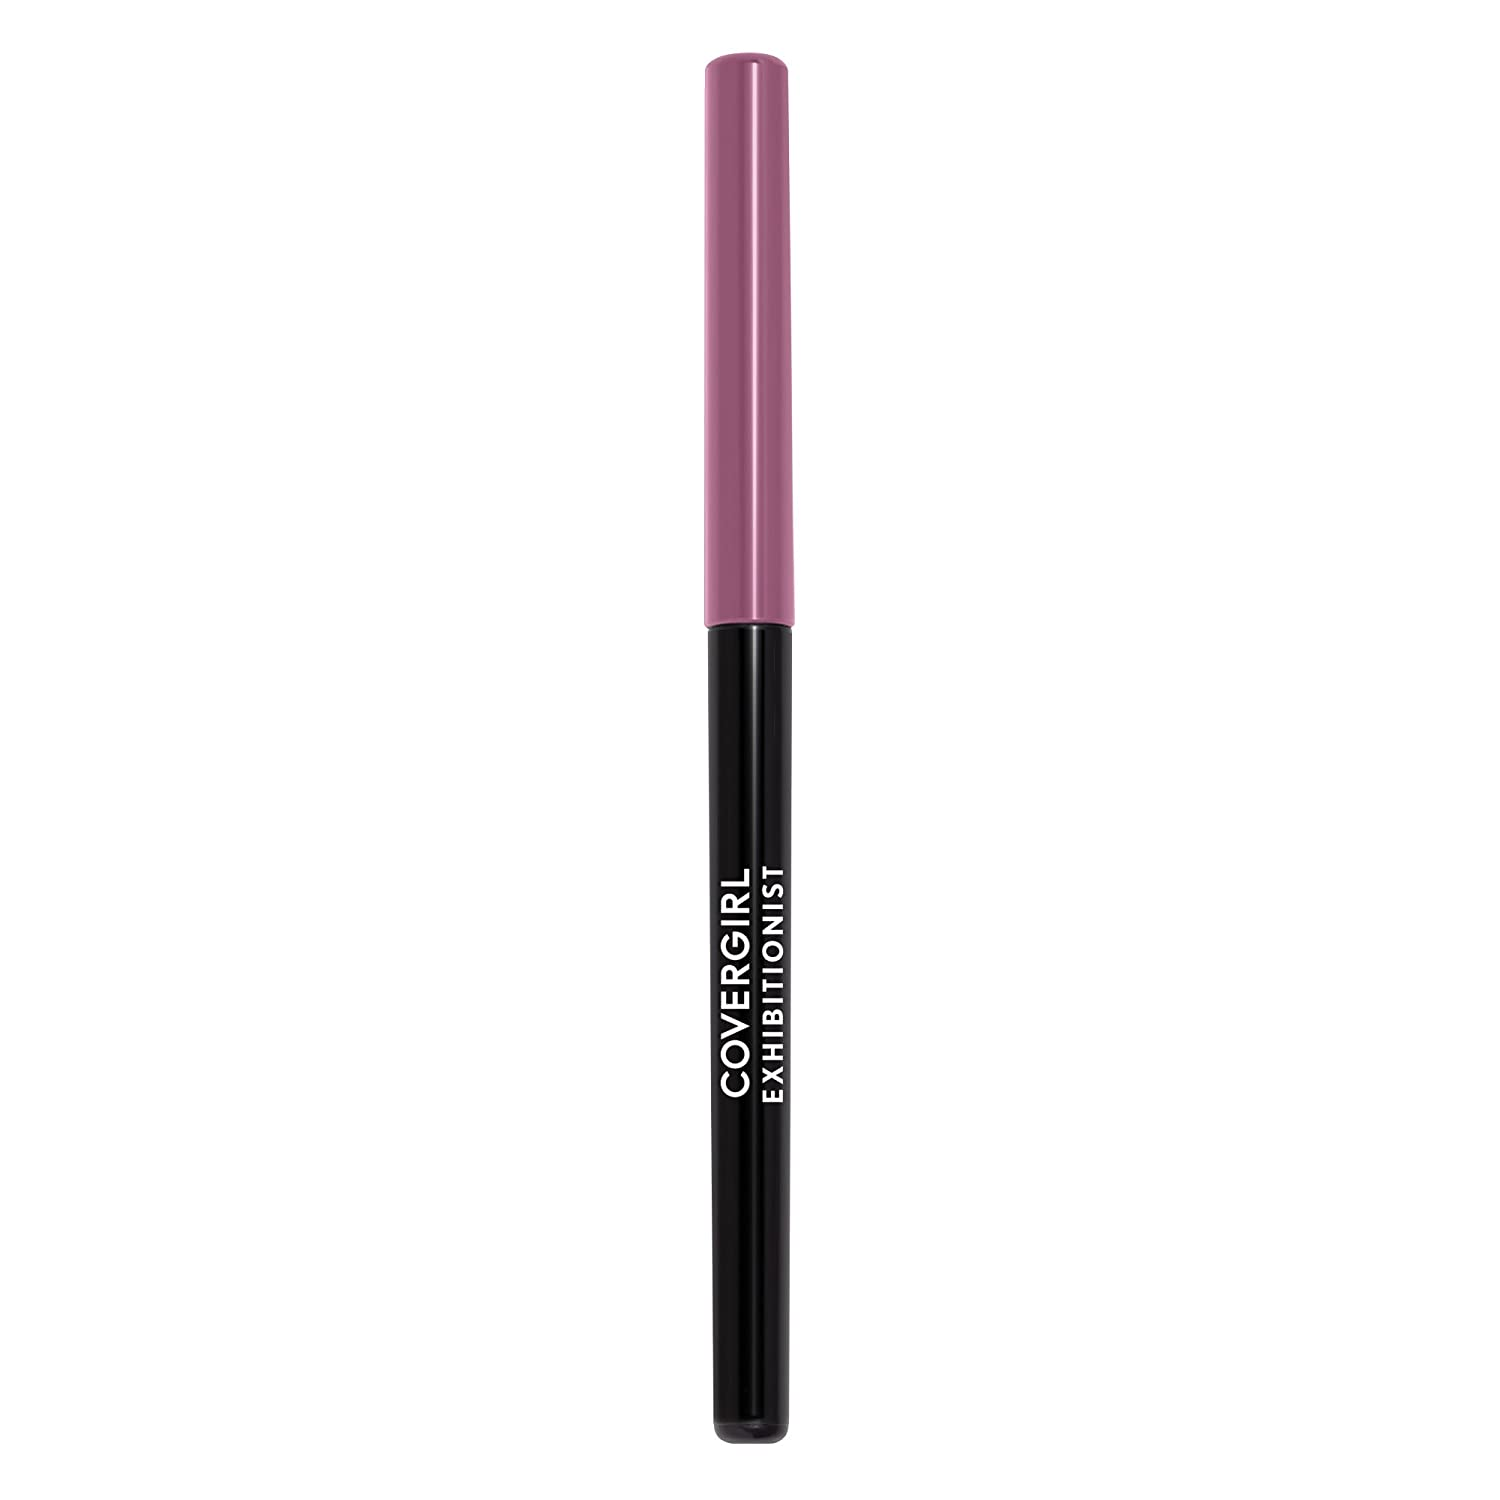 COVERGIRL - Exhibitionist All-Day Lip Liner Coty